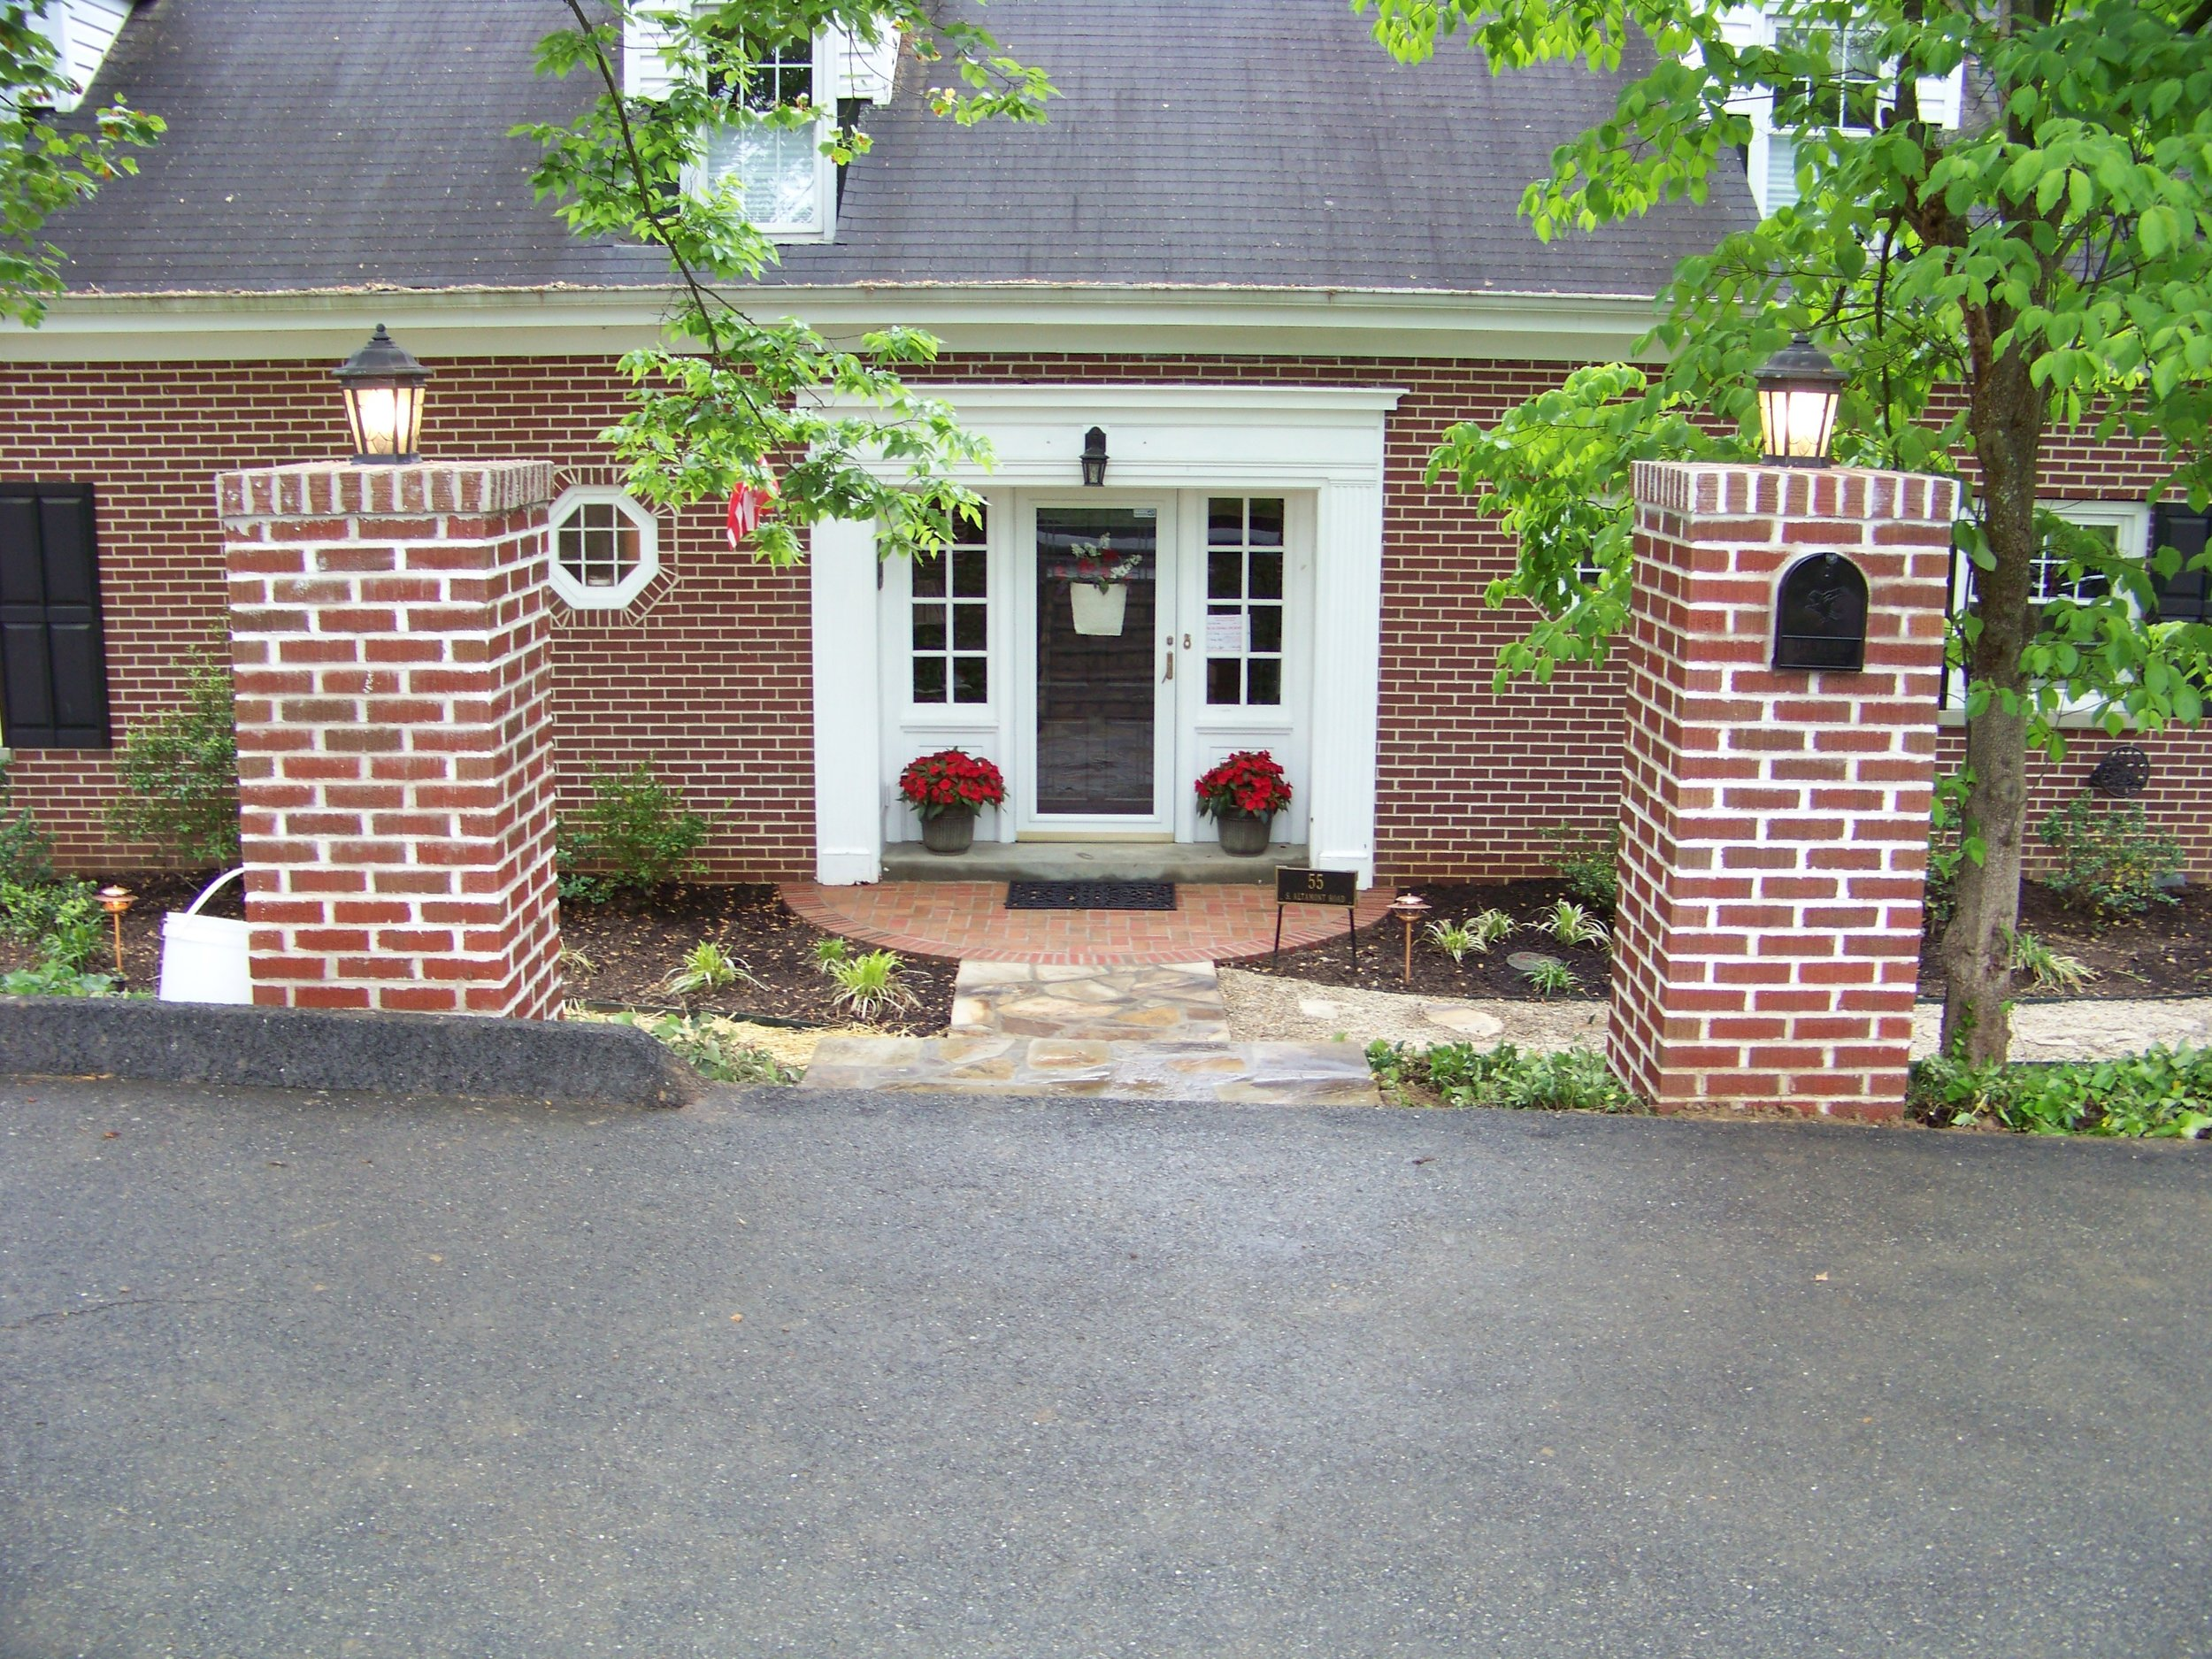 Brick columns, flagstone walk and entrance